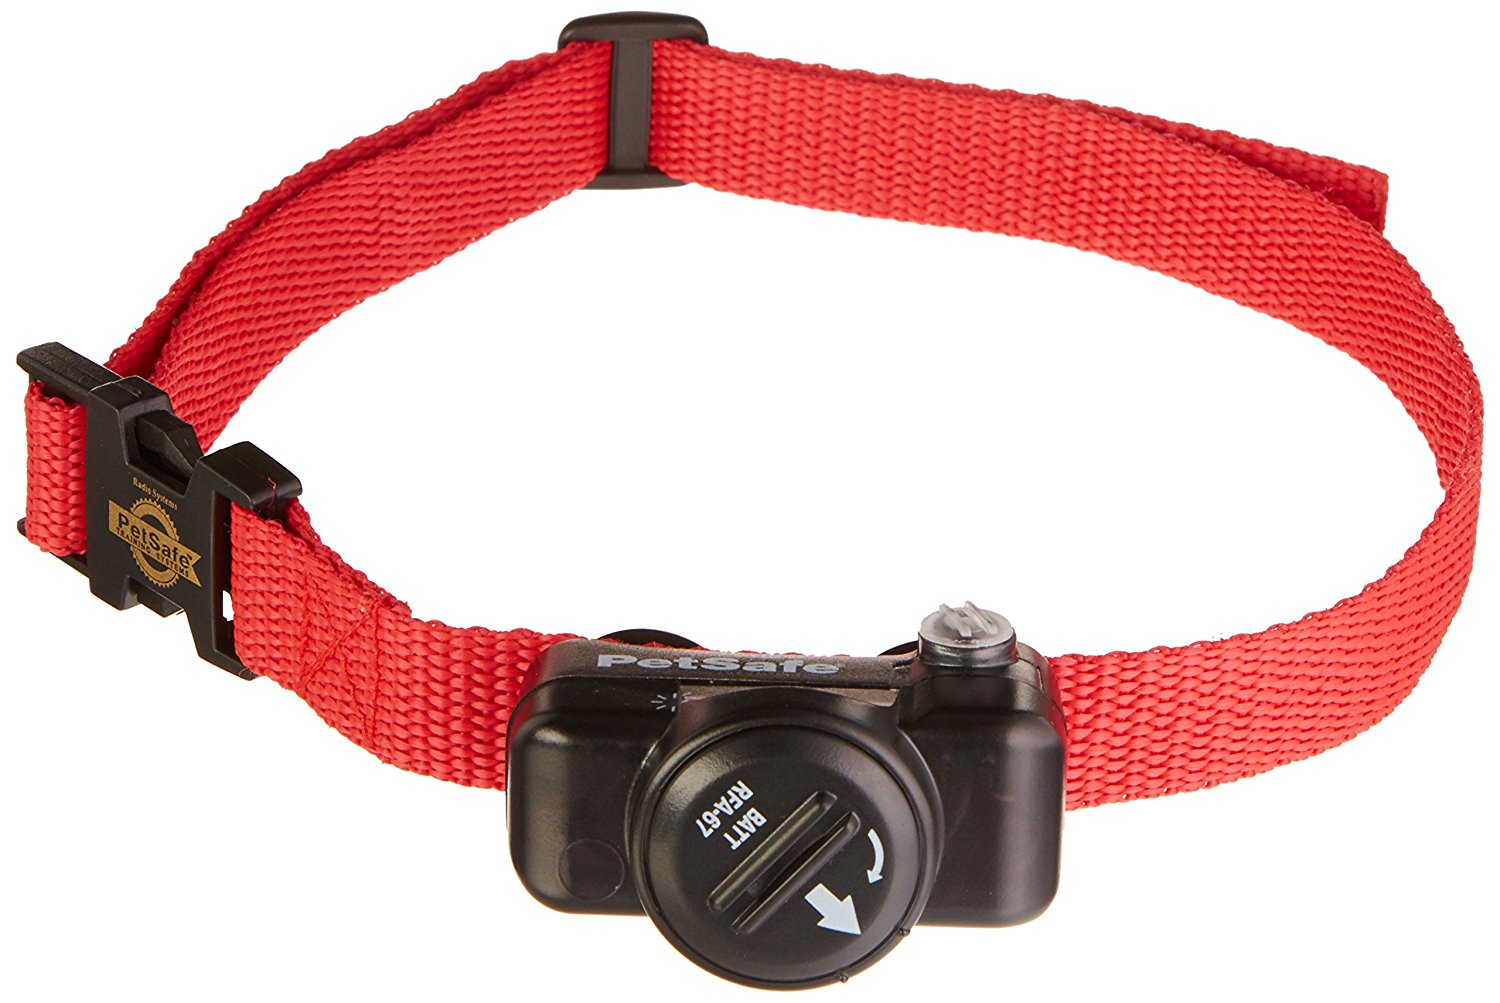 PetSafe In-Ground Deluxe Ultralight Collar PUL-275 Featured